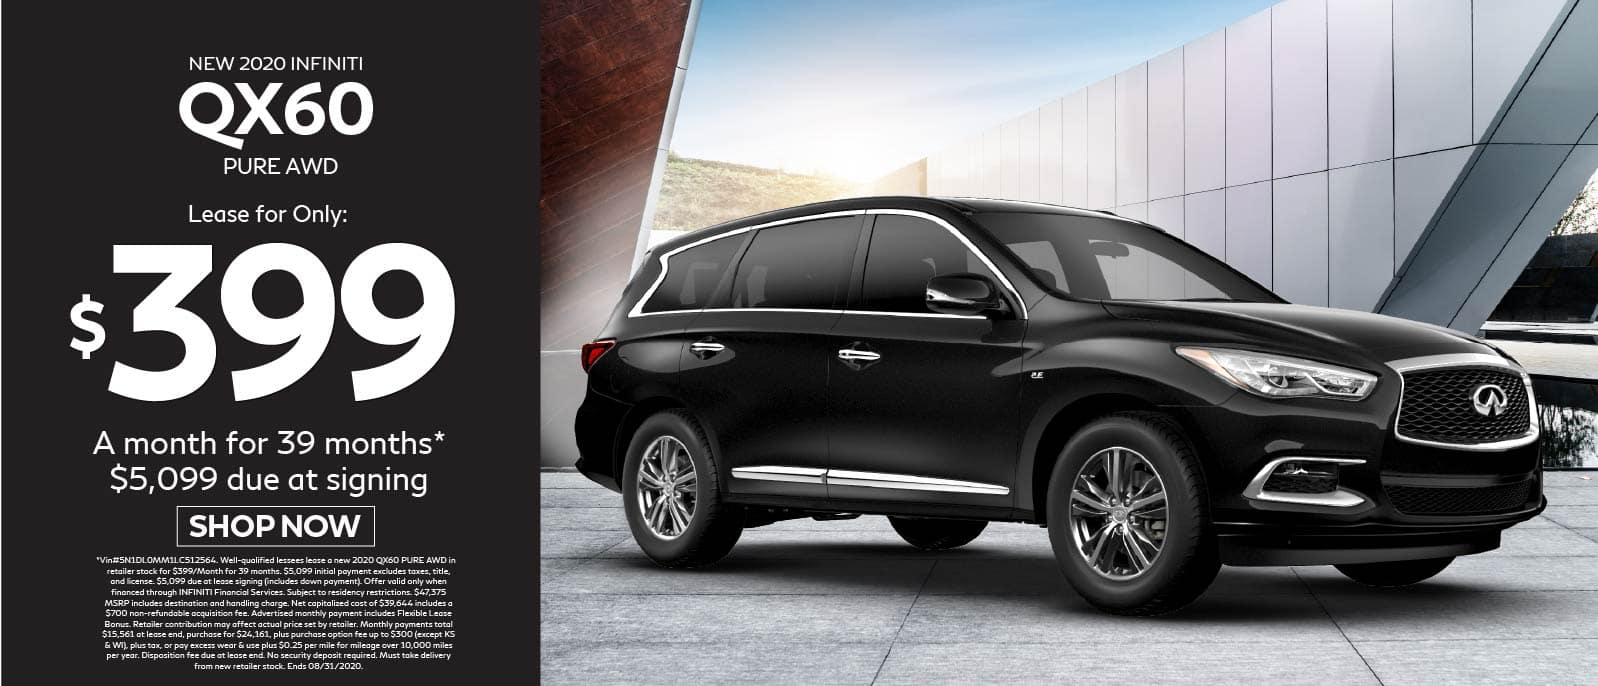 2020 INFINITI QX60 Luxe AWD Lease for $399 a month for 39 months $5099 due at signing. Shop Now.